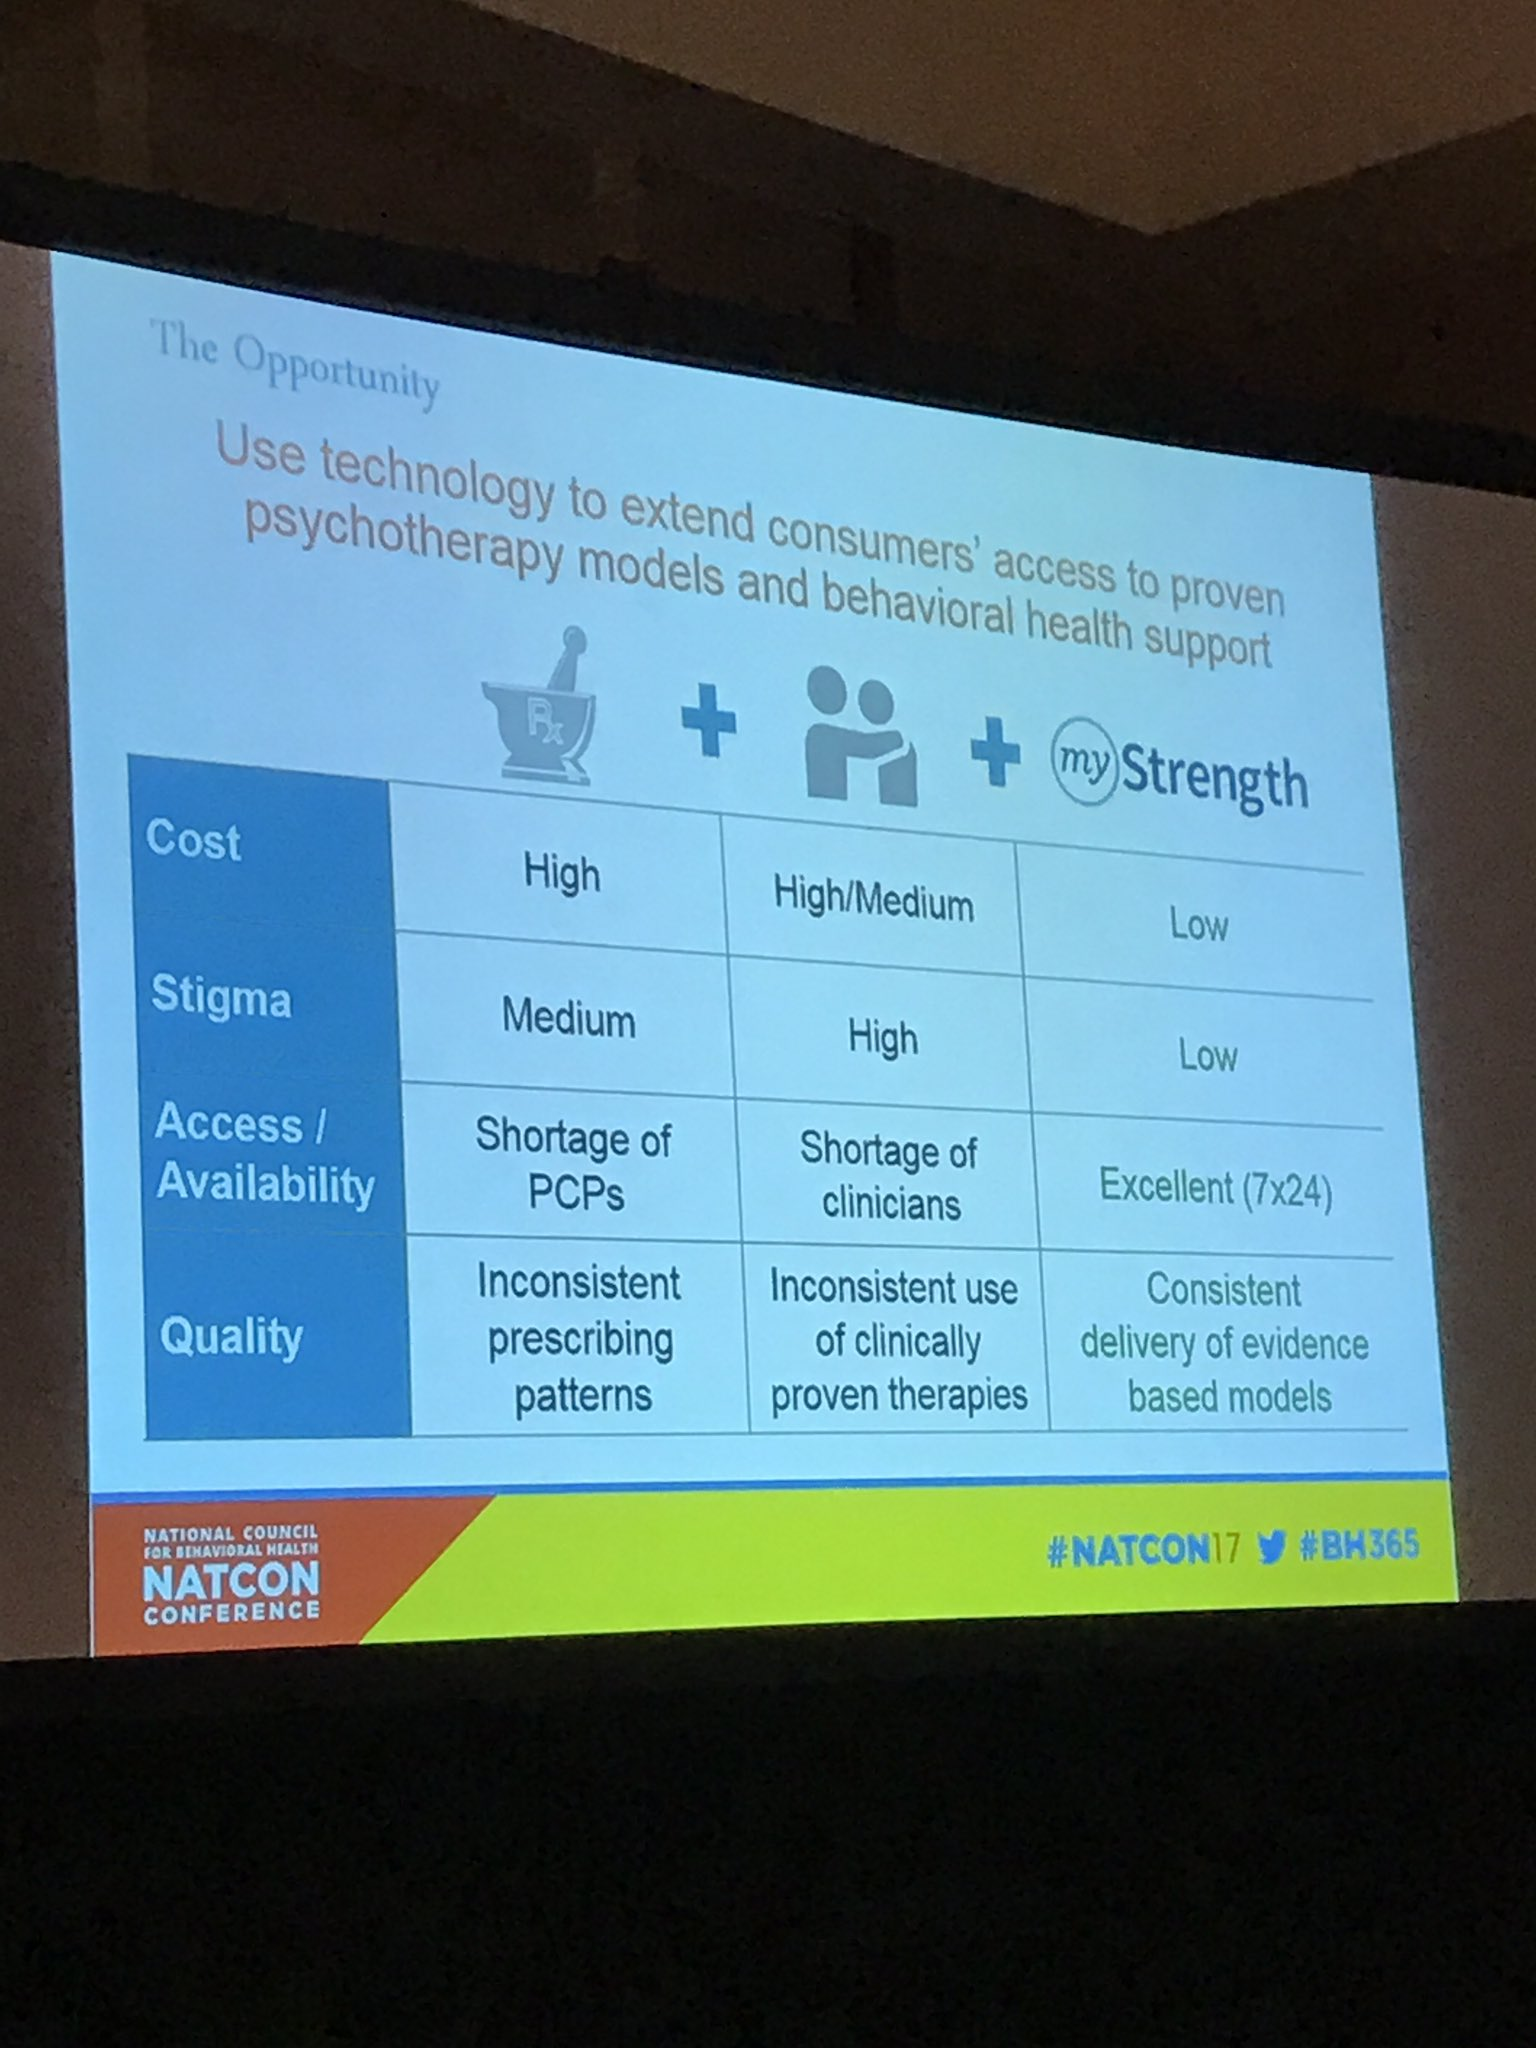 Scott Cousino of @mystrengthbh talking benefits of digital tools &how it can be an extension of treamtment to keep people engaged #NatCon17 https://t.co/Z02bA0pDPs